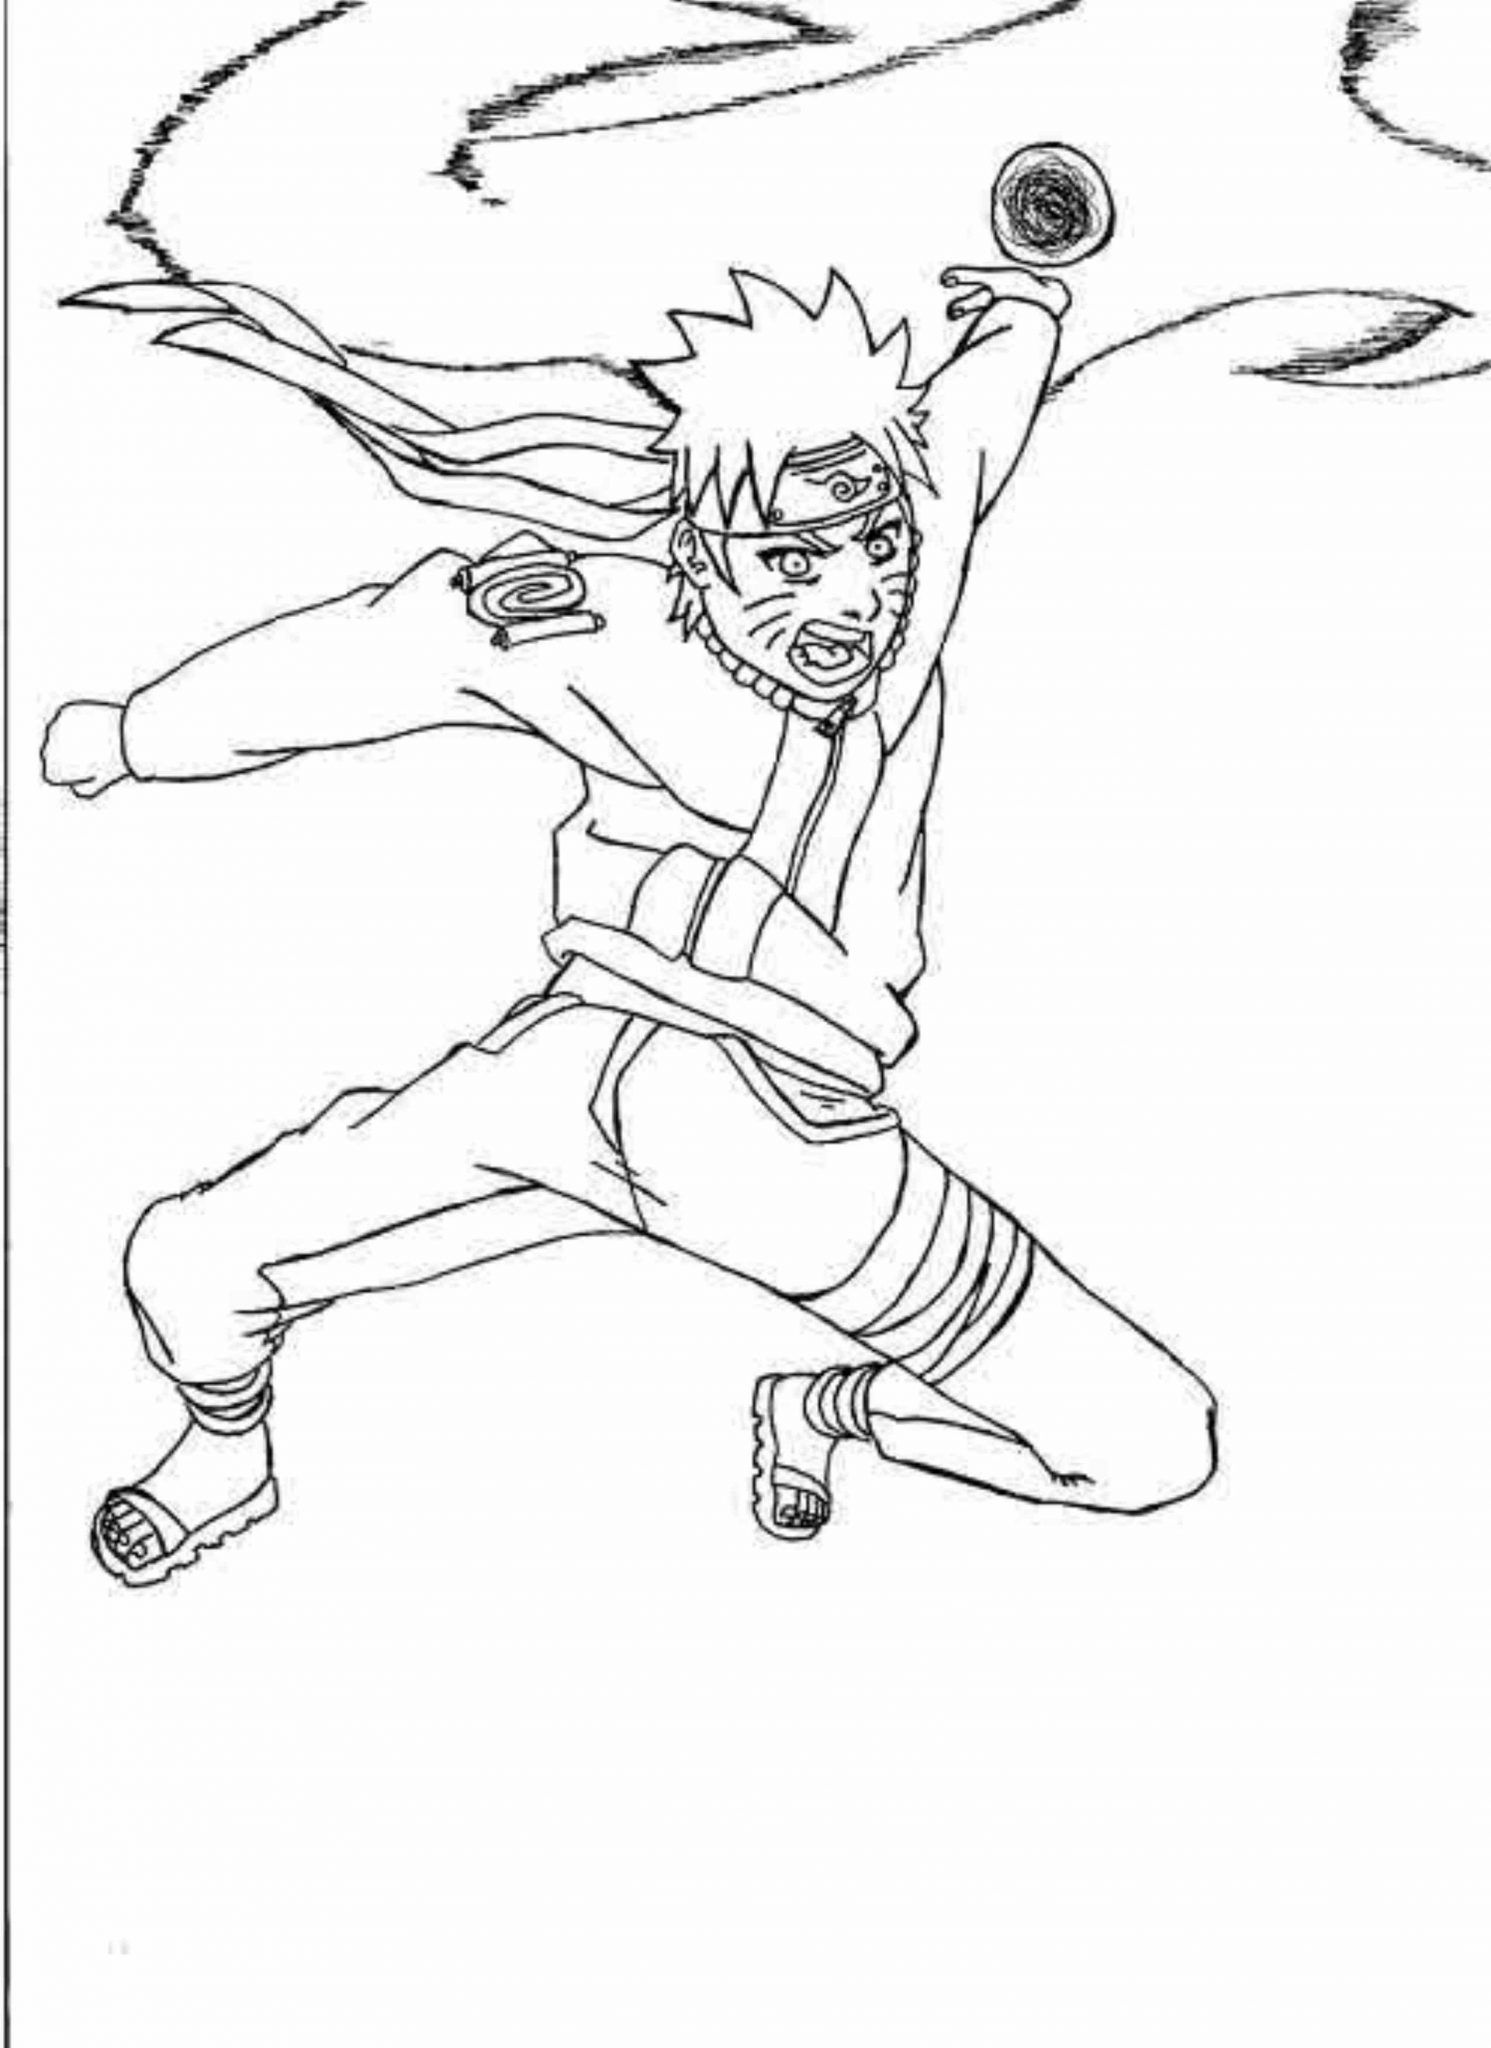 Naruto Rasengan Coloring Pages Chibi Coloring Pages Cartoon Coloring Pages Coloring Pages